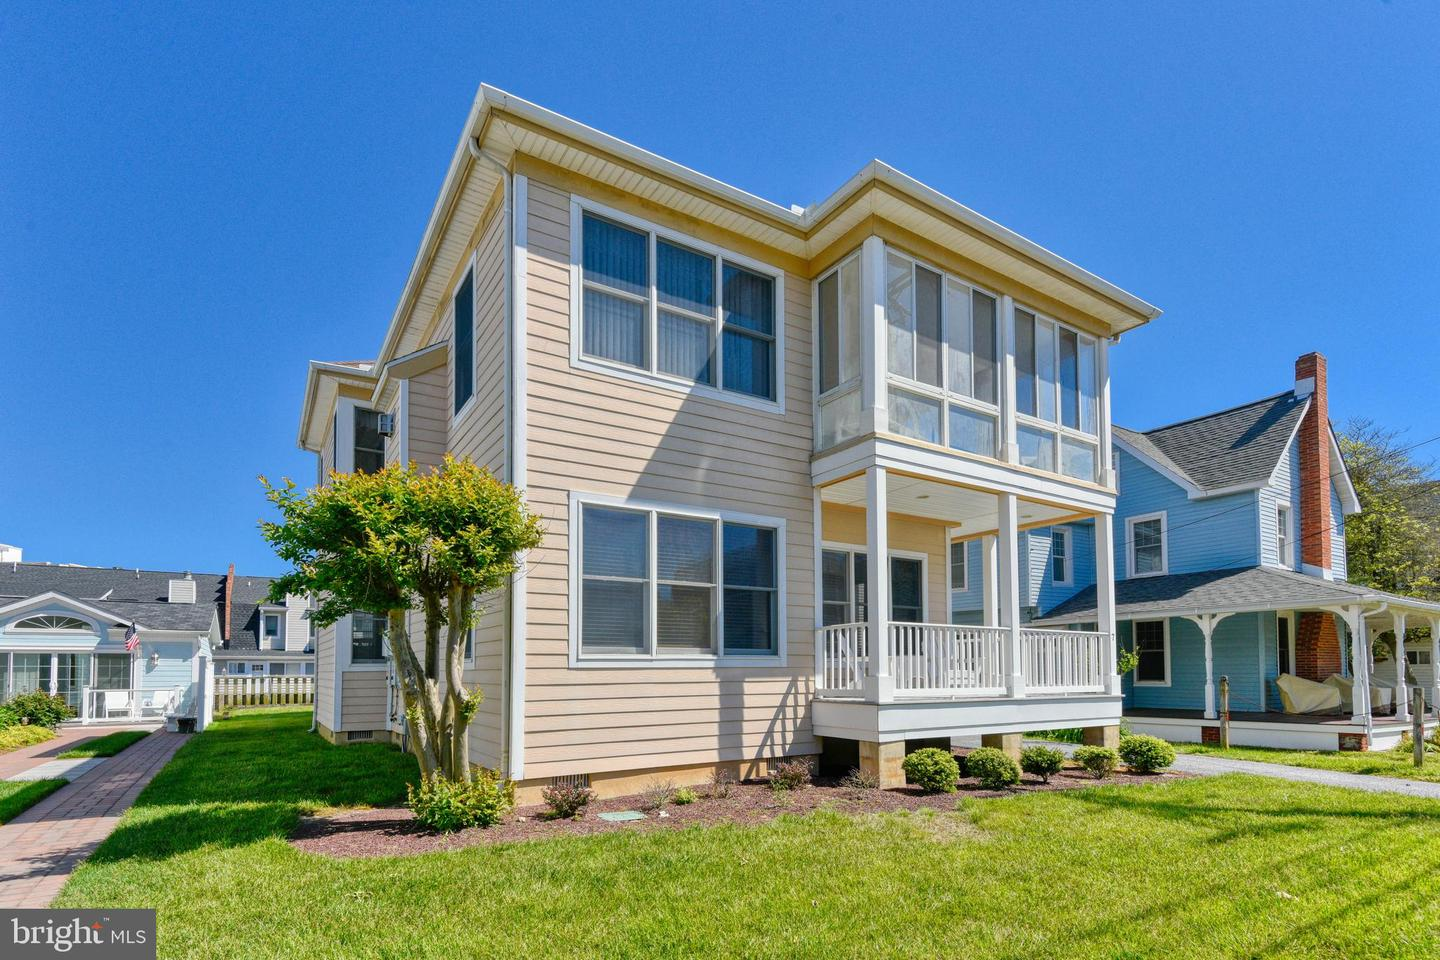 DESU140752-301729566184-2019-05-20-15-11-27 7 Olive Ave | Rehoboth Beach, DE Real Estate For Sale | MLS# Desu140752  - Coldwell Banker Resort Realty